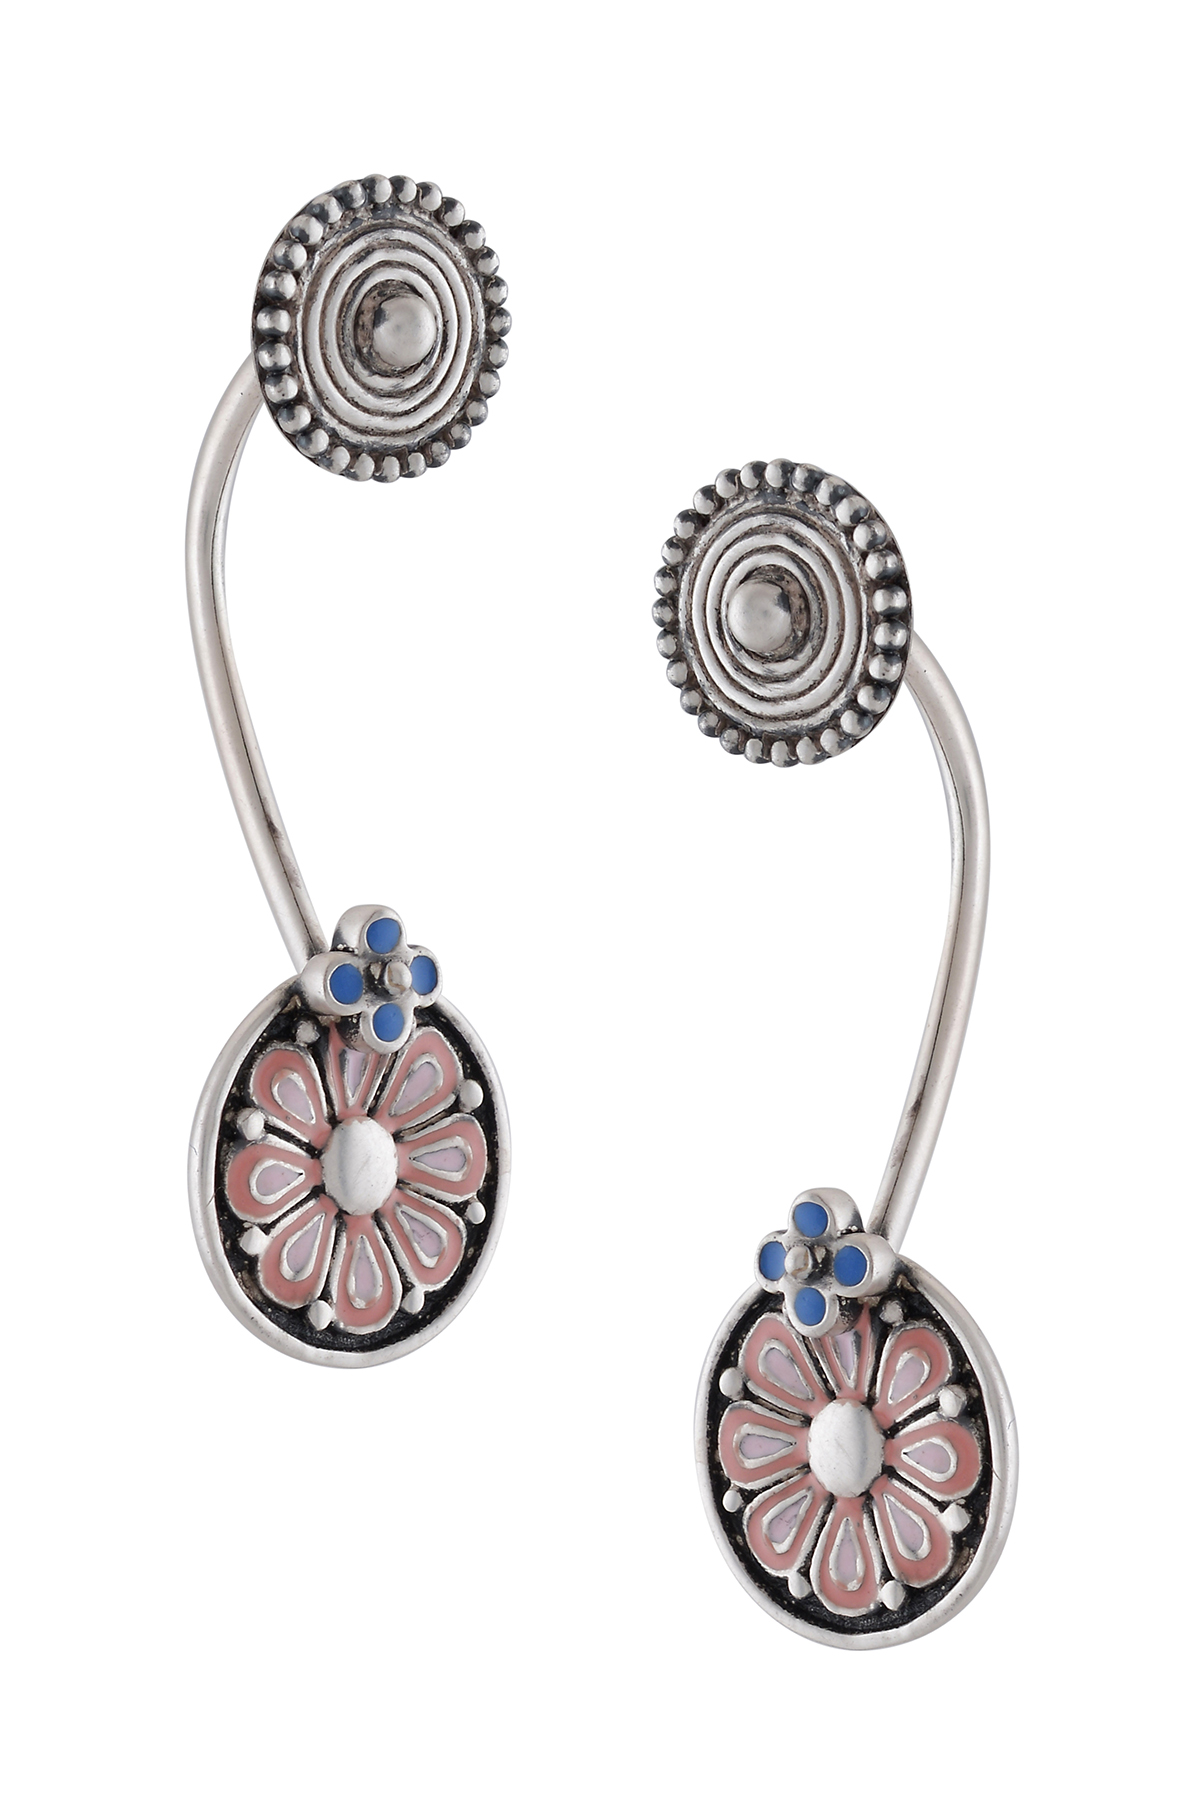 Pink Enamel and Coin Floating Earrings